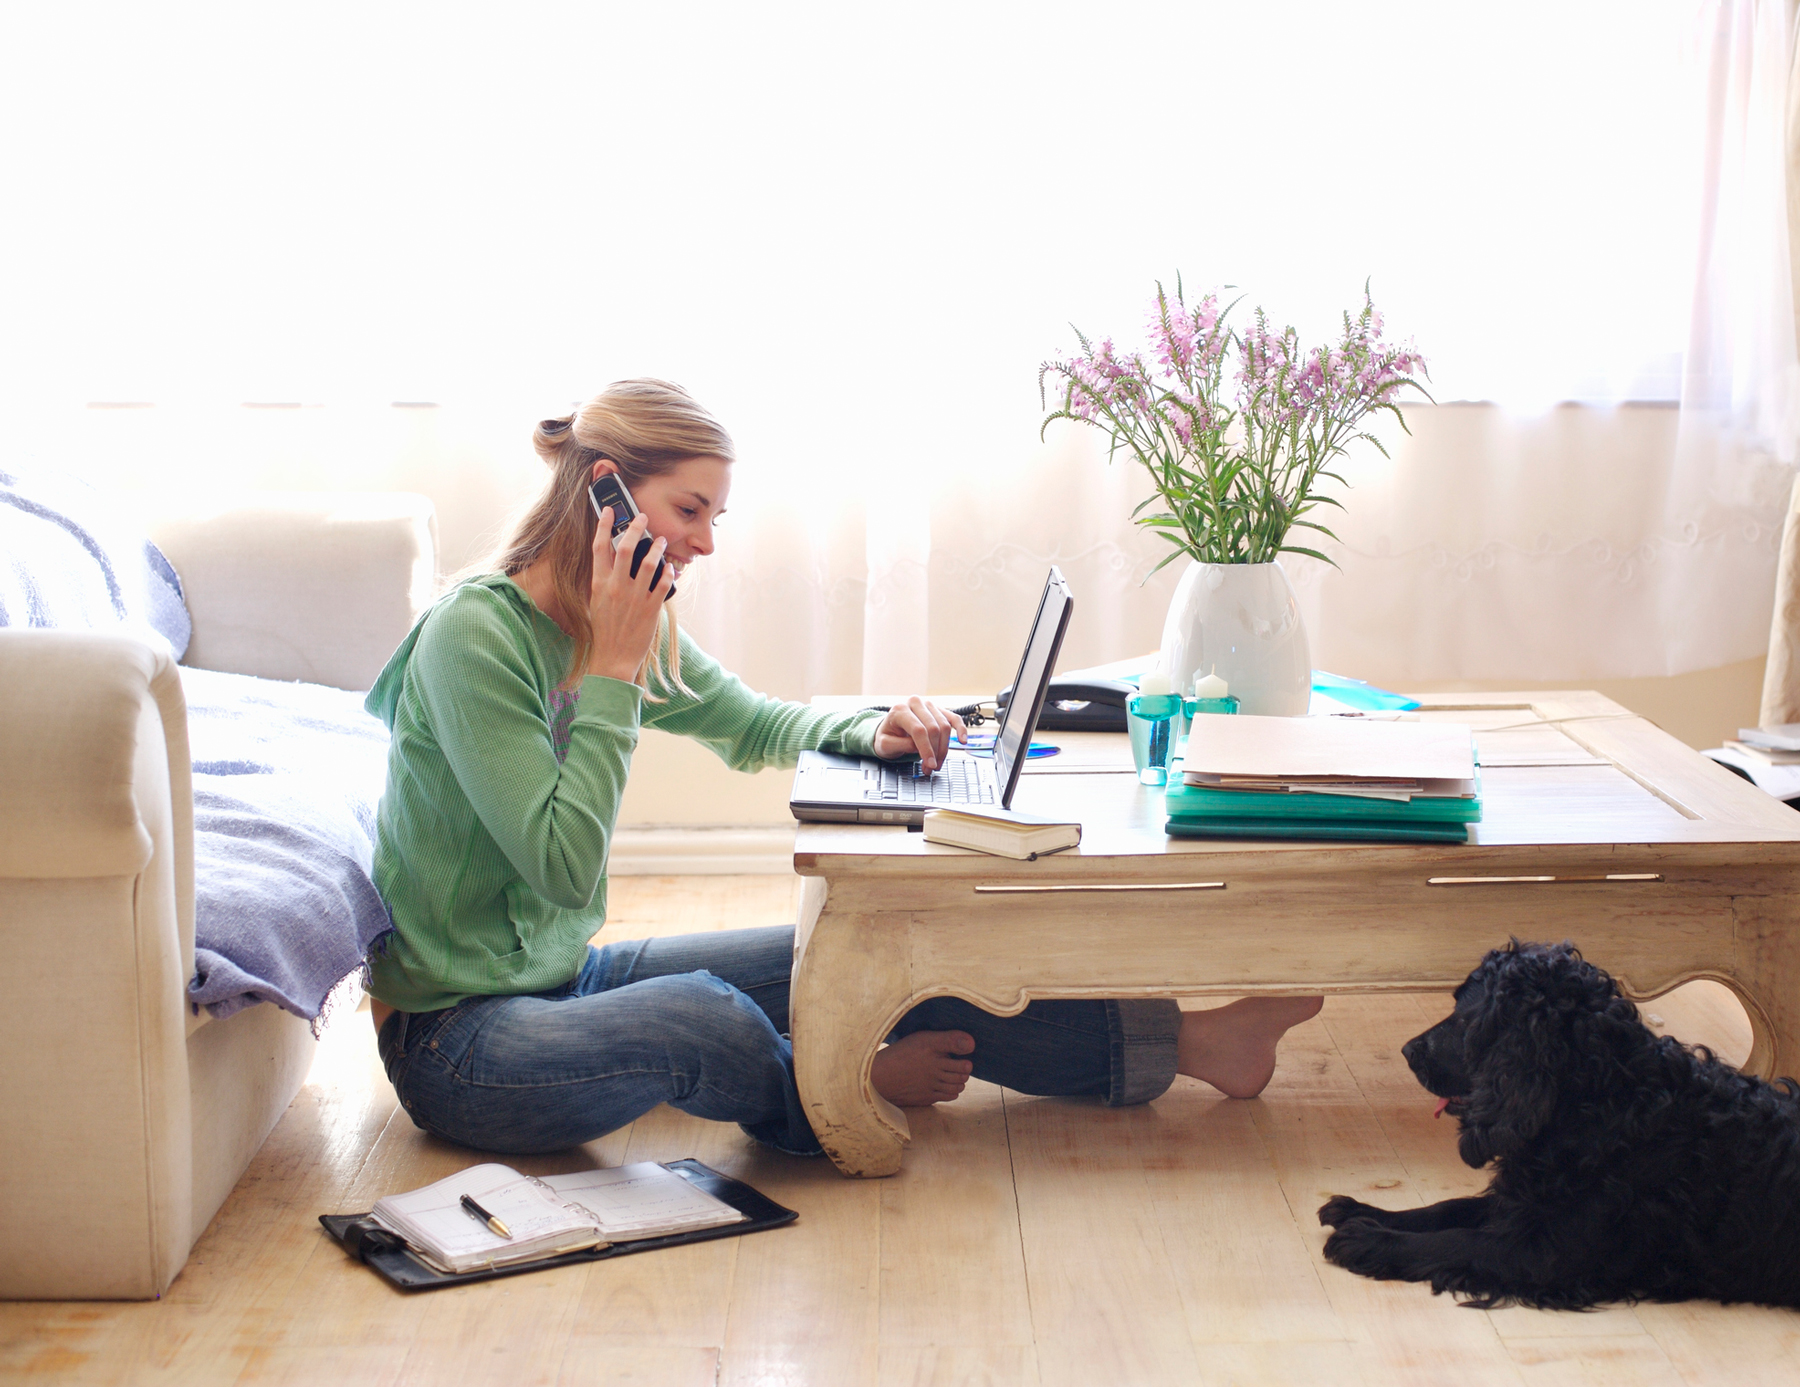 Woman working from home - best/worst working from home perks